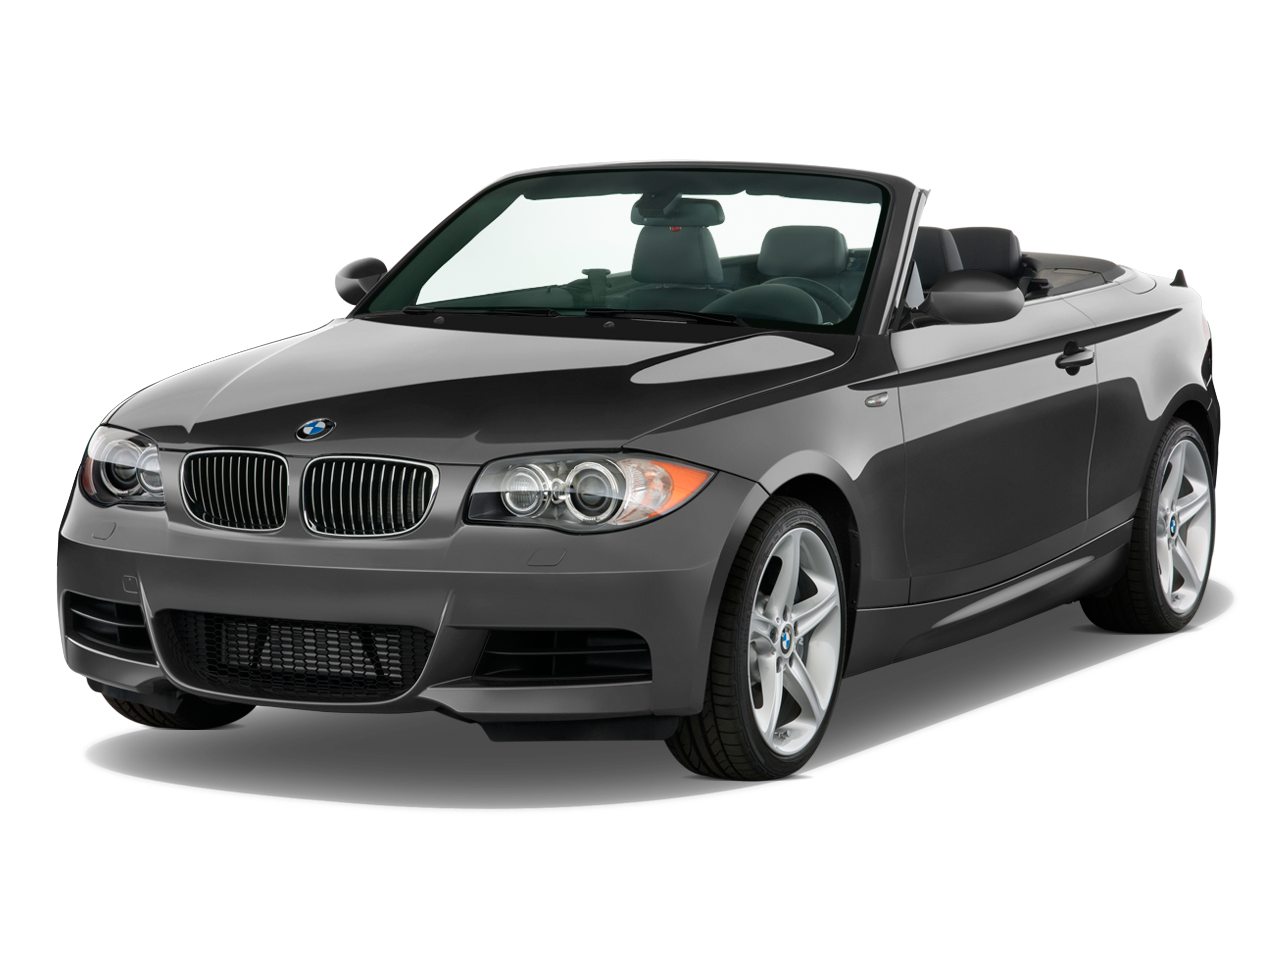 Bmw 128I Convertible >> 2009 BMW 128i Convertible - BMW Luxury Convertible Review - Automobile Magazine